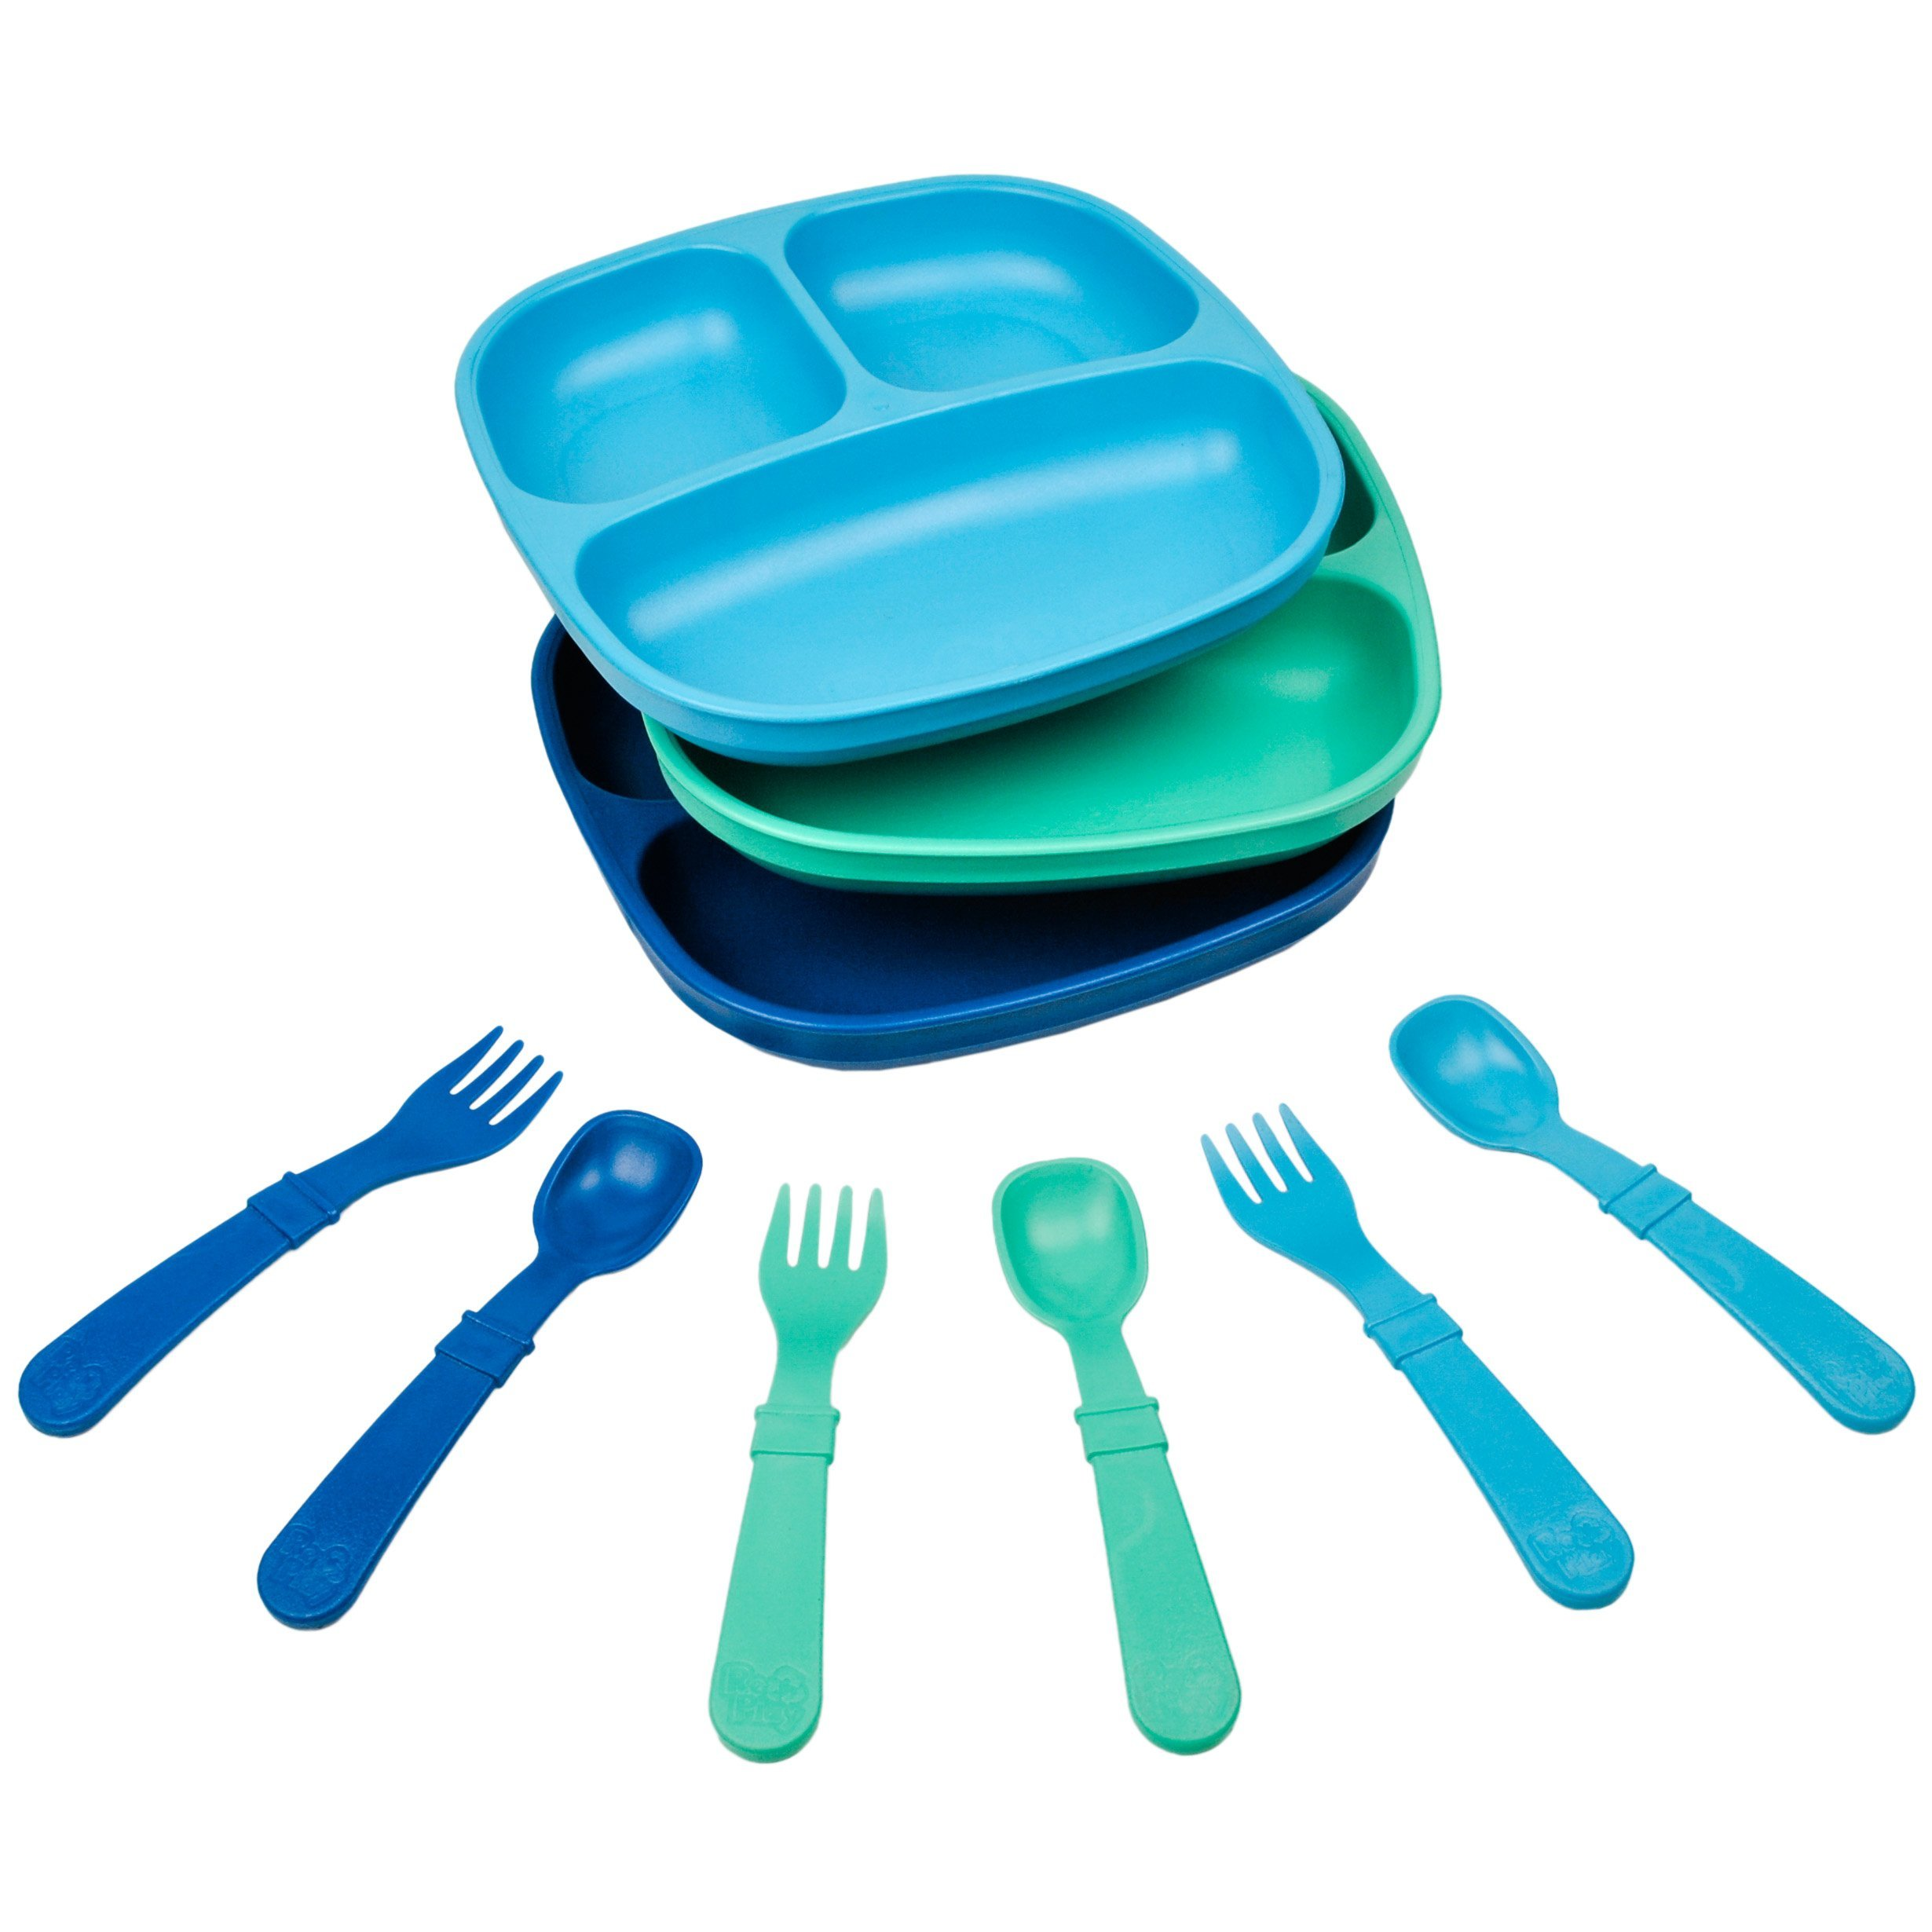 Re-Play Made in The USA Dinnerware Set - 3pk Divided Plates with Matching Utensils Set (True Blue) by Re-Play